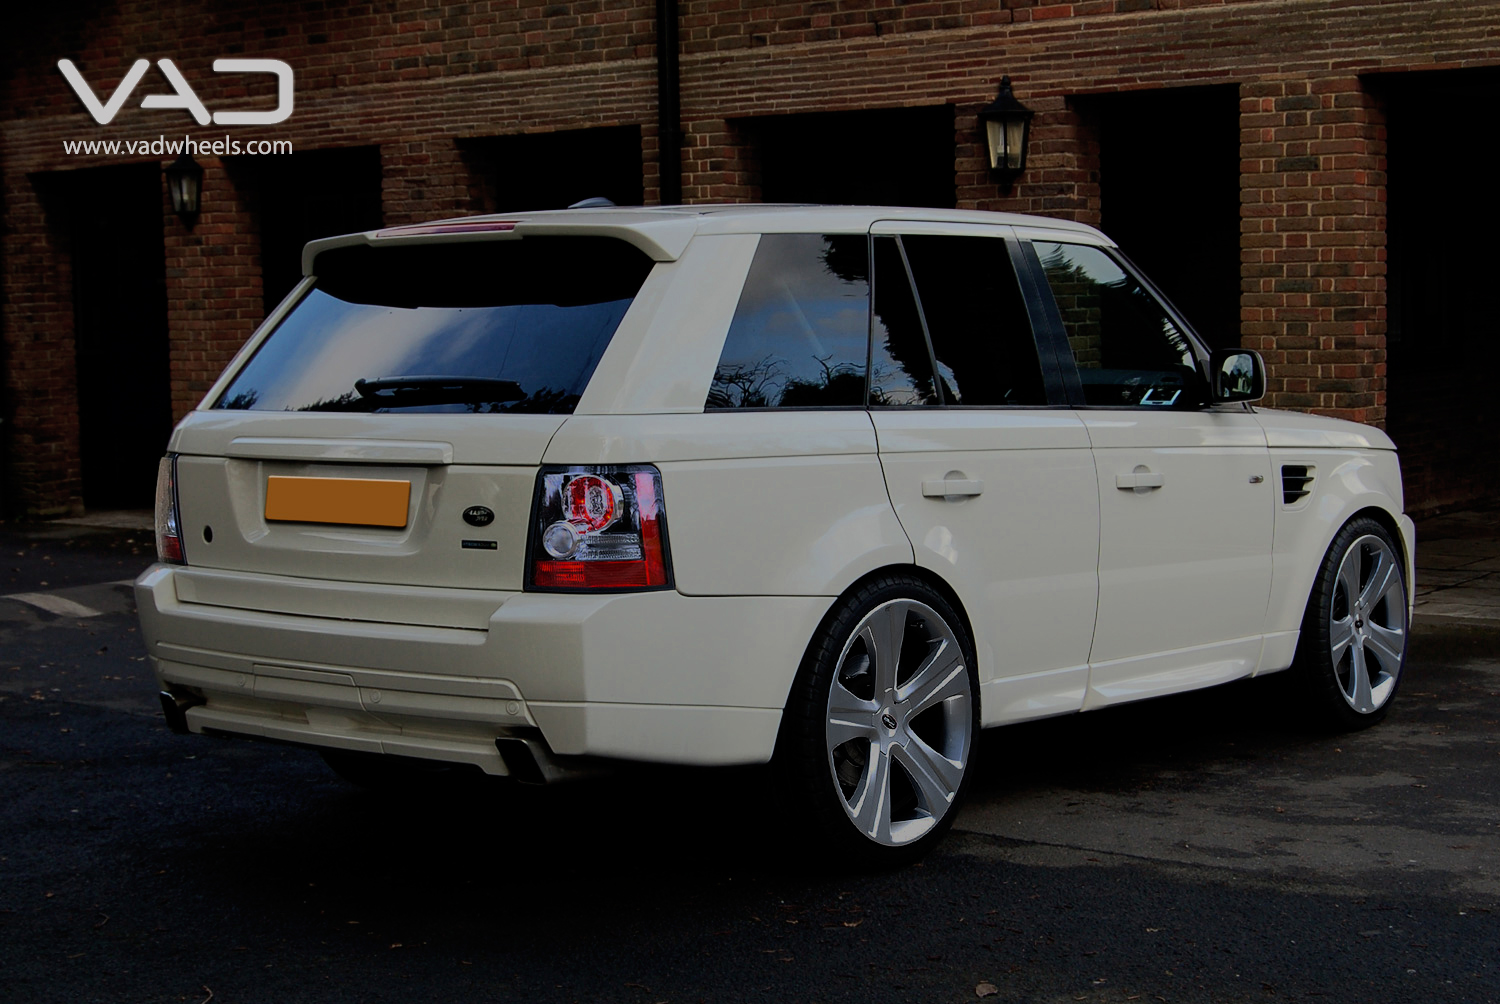 Range Rover Sport White Fitted With 22'' Vogue Evo